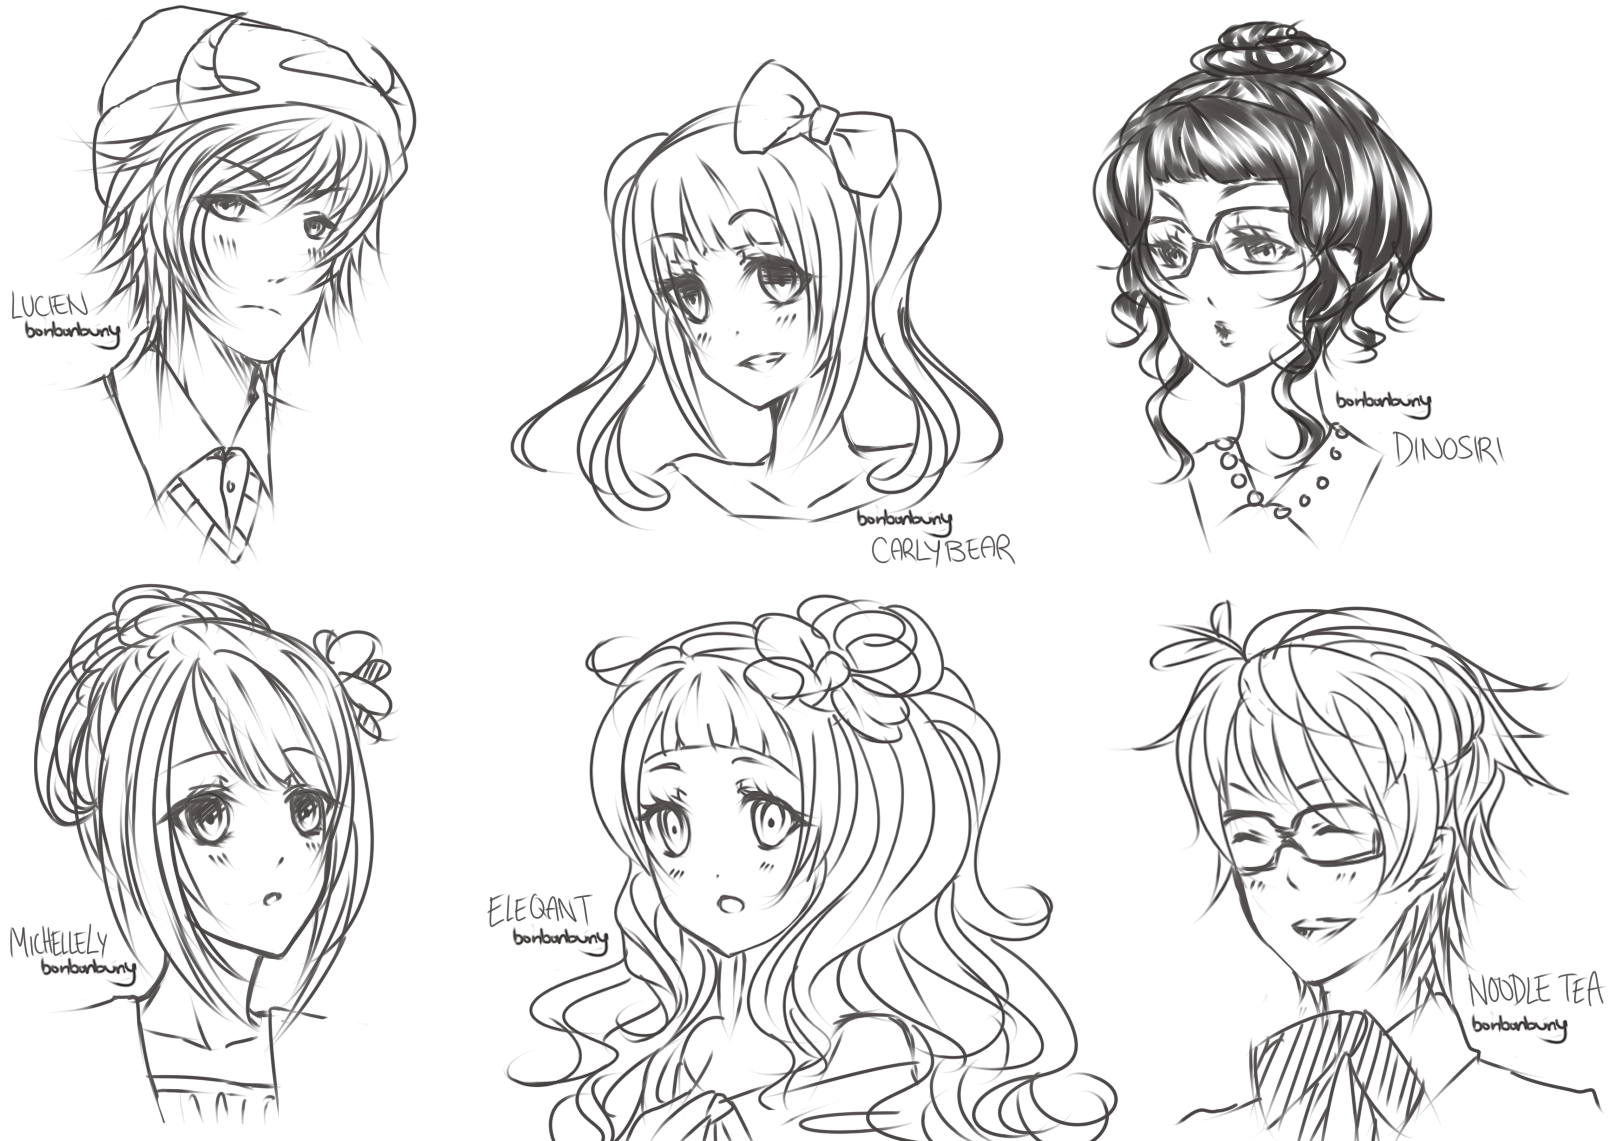 LINEPLAY (free sketches) by Miivei